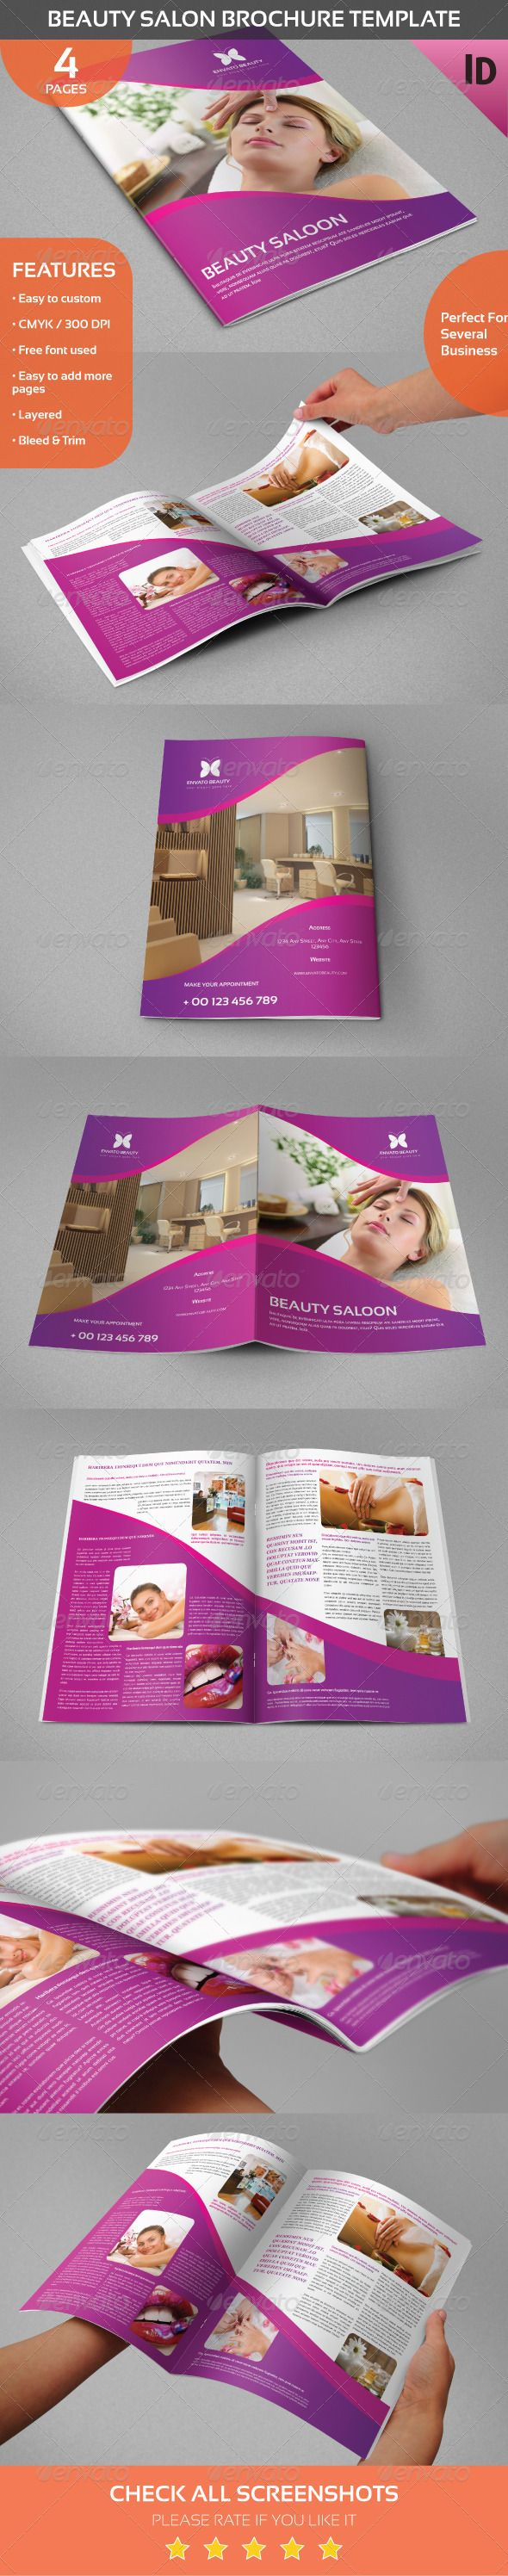 Beauty Salon Brochure Template  Massage Stylists And Beauty Salons